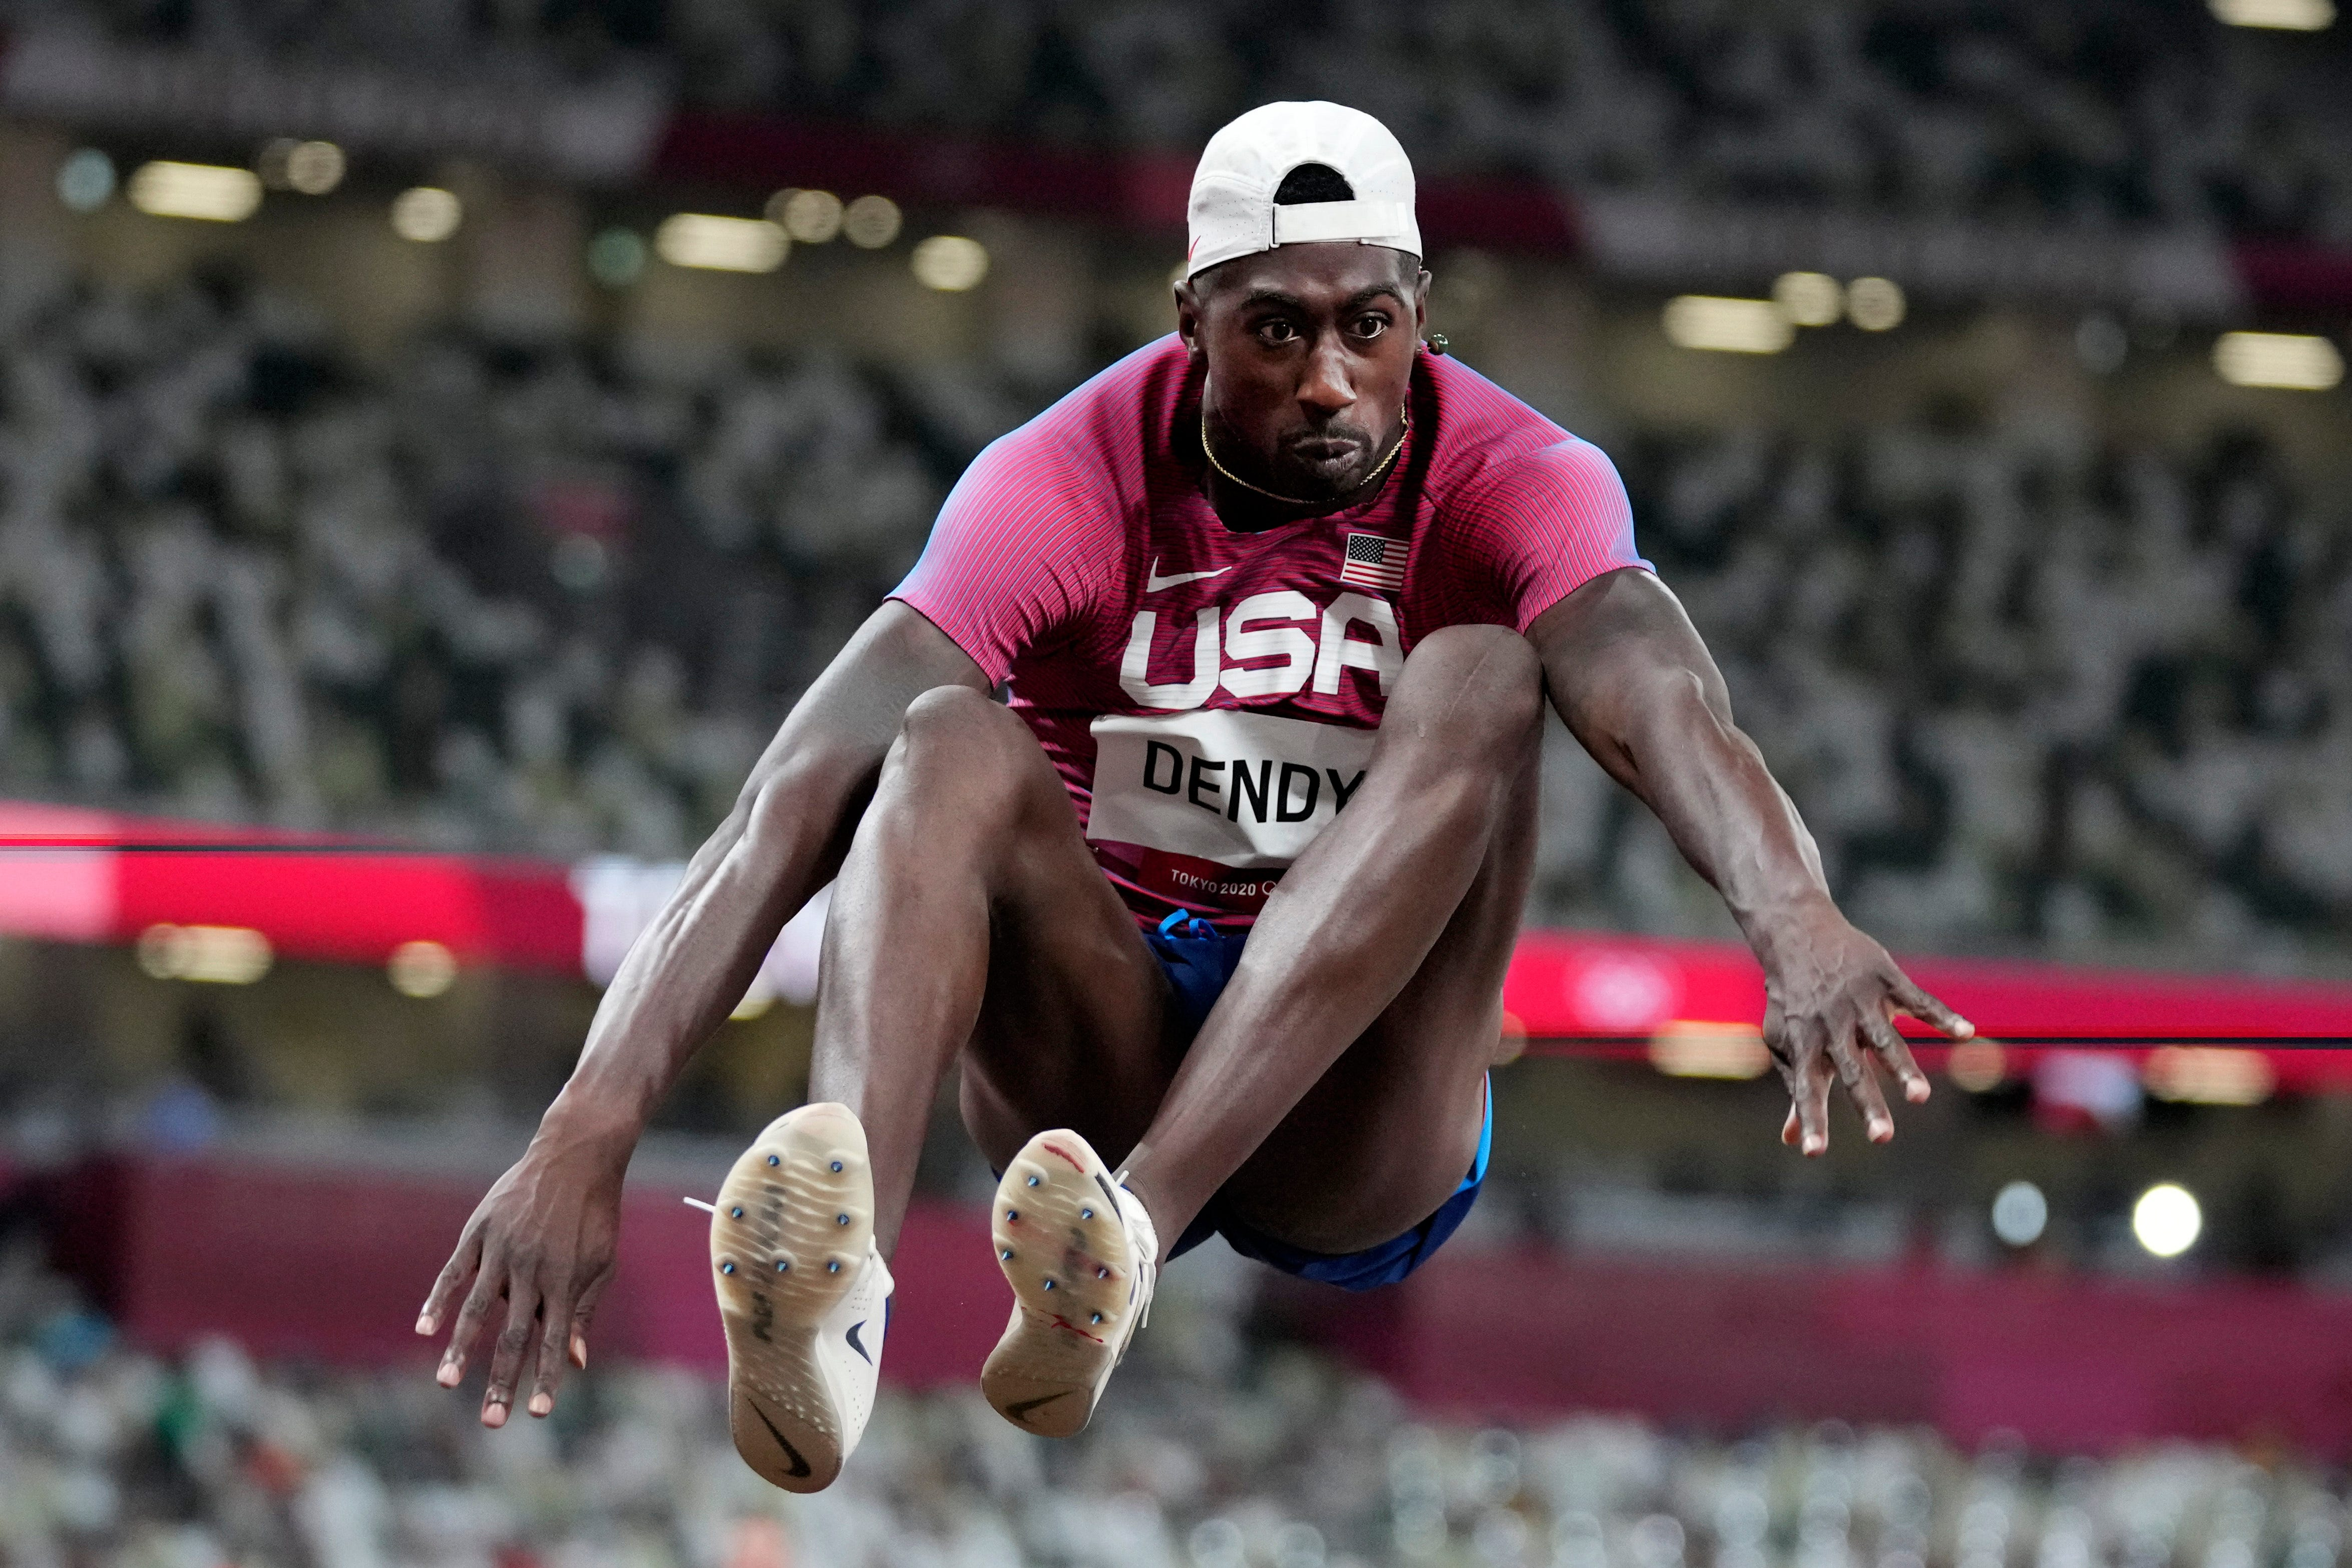 Middletown High graduate Marquis Dendy competes in the long jump at the 2020 Summer Olympics, Saturday, July 31, 2021, in Tokyo.